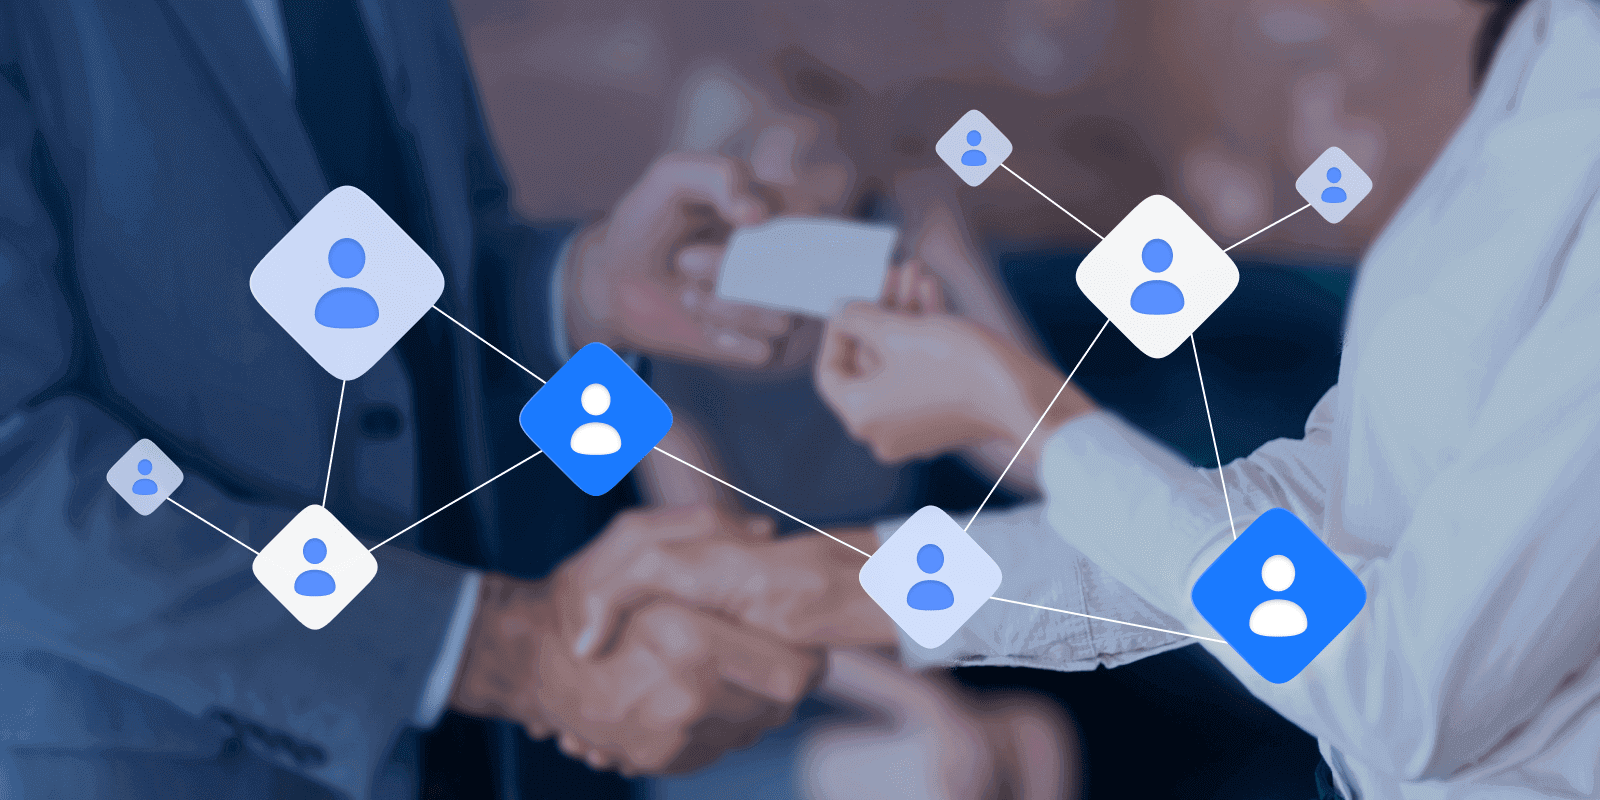 How to start a networking group? – Nection